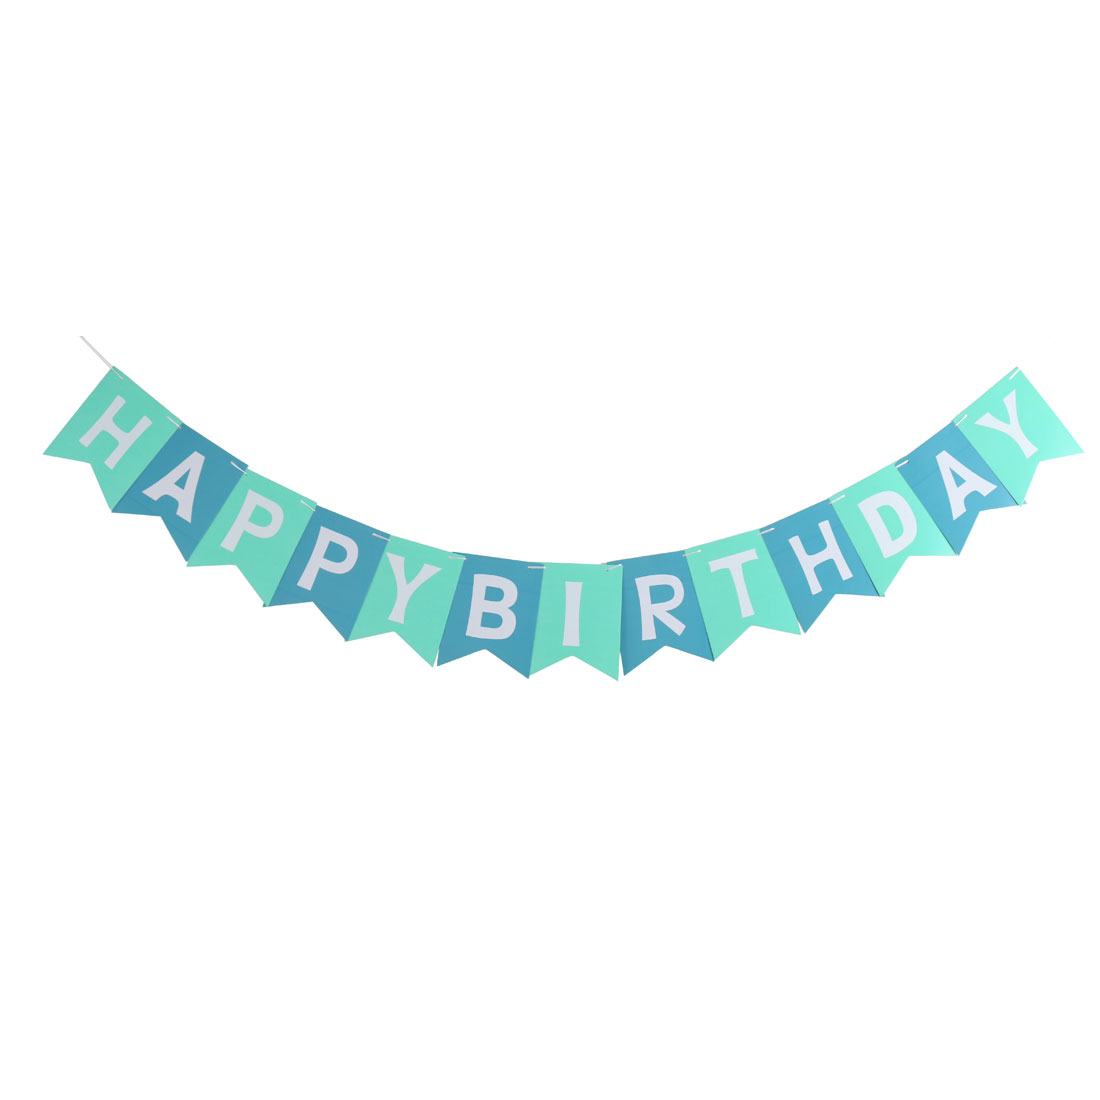 Paper HAPPY BIRTHDAY Letter Print DIY Craft Party Hanger Decor Photo Prop Banner